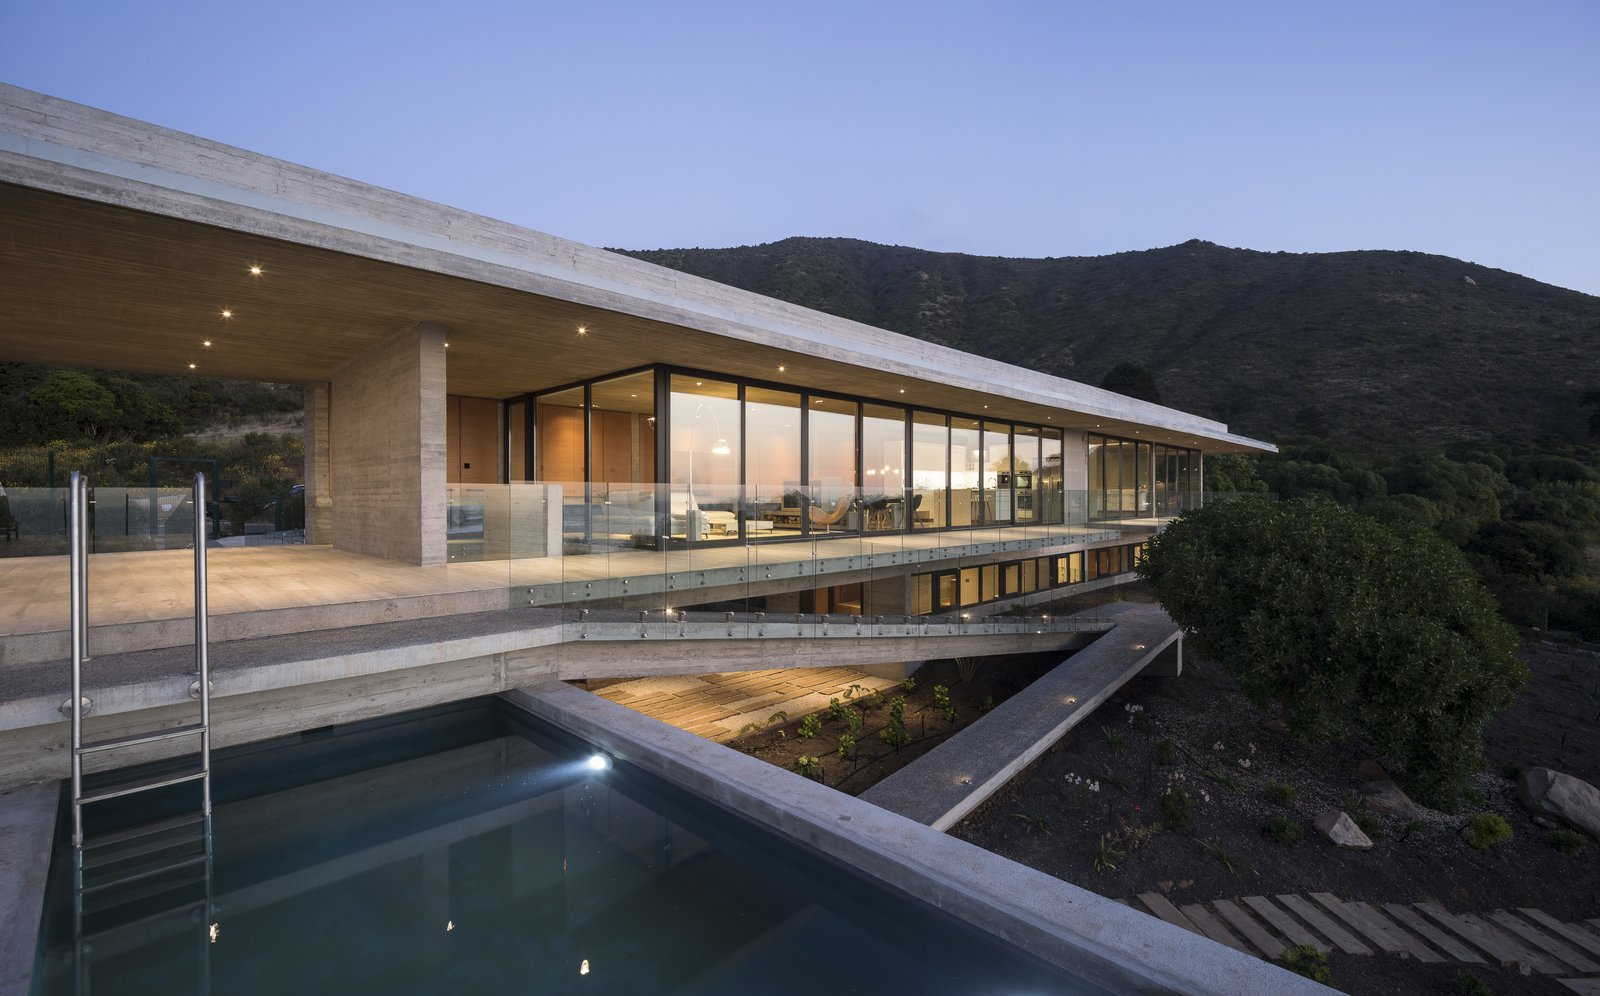 Outdoor, Small Pools, Tubs, Shower, Side Yard, Large Patio, Porch, Deck, and Concrete Patio, Porch, Deck The staircase and ramp serve as vertical circulation, connecting the base and access levels.     Photo 11 of 14 in This Chilean Concrete Home Levitates Off a Coastal Slope